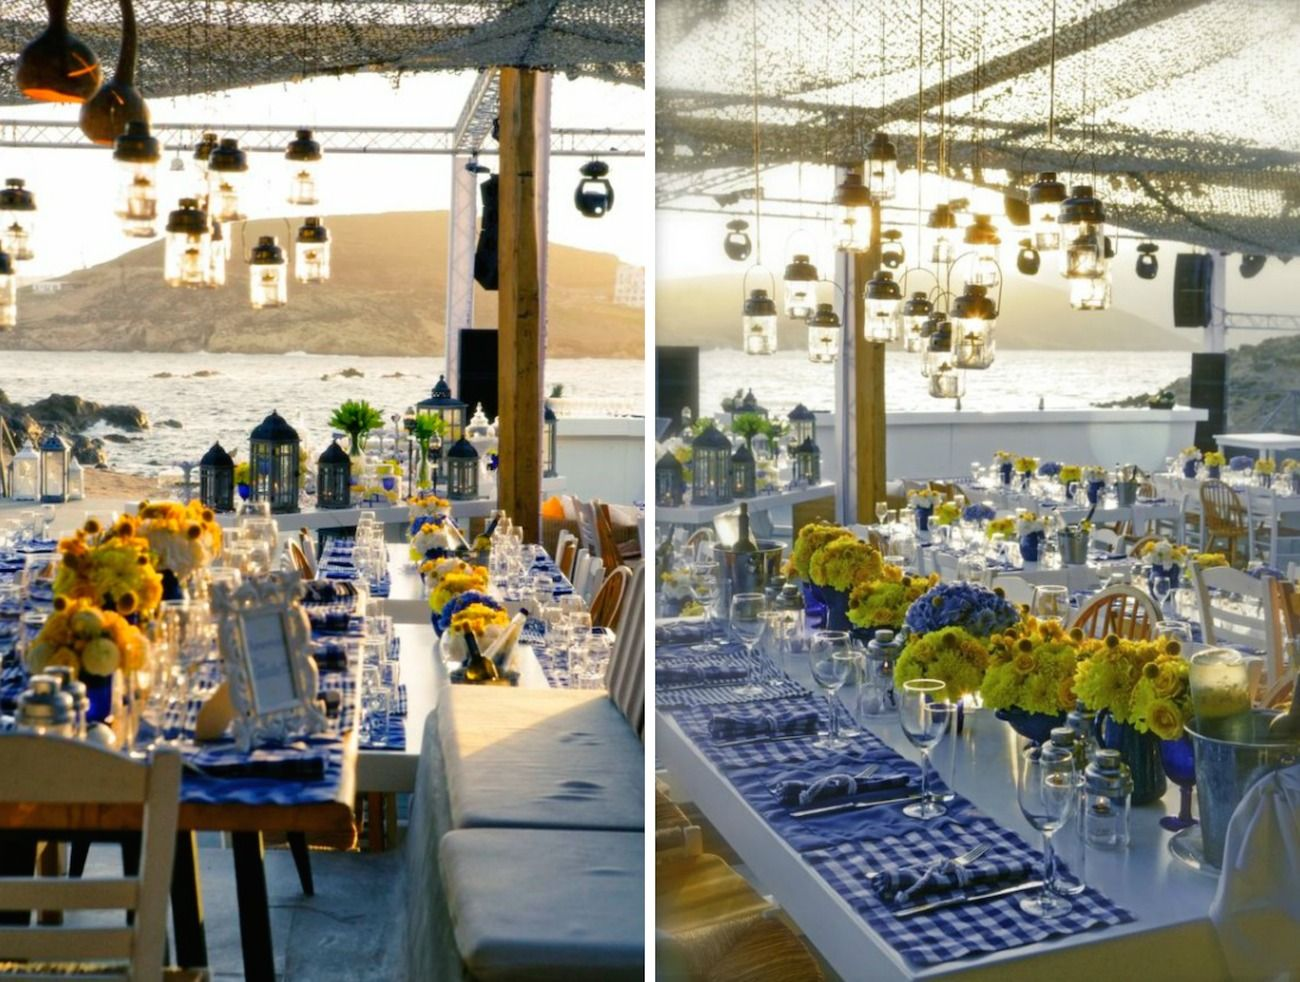 When Brazil Meets Greece Wedding @ Alemagou, Mykonos by De Plan V. Alemagou's dinner area, art de la table, long tables, hanging lanterns, sea view, sands of Ftelia beach, Brazilian and mediterranean culture comes together harmoniously!